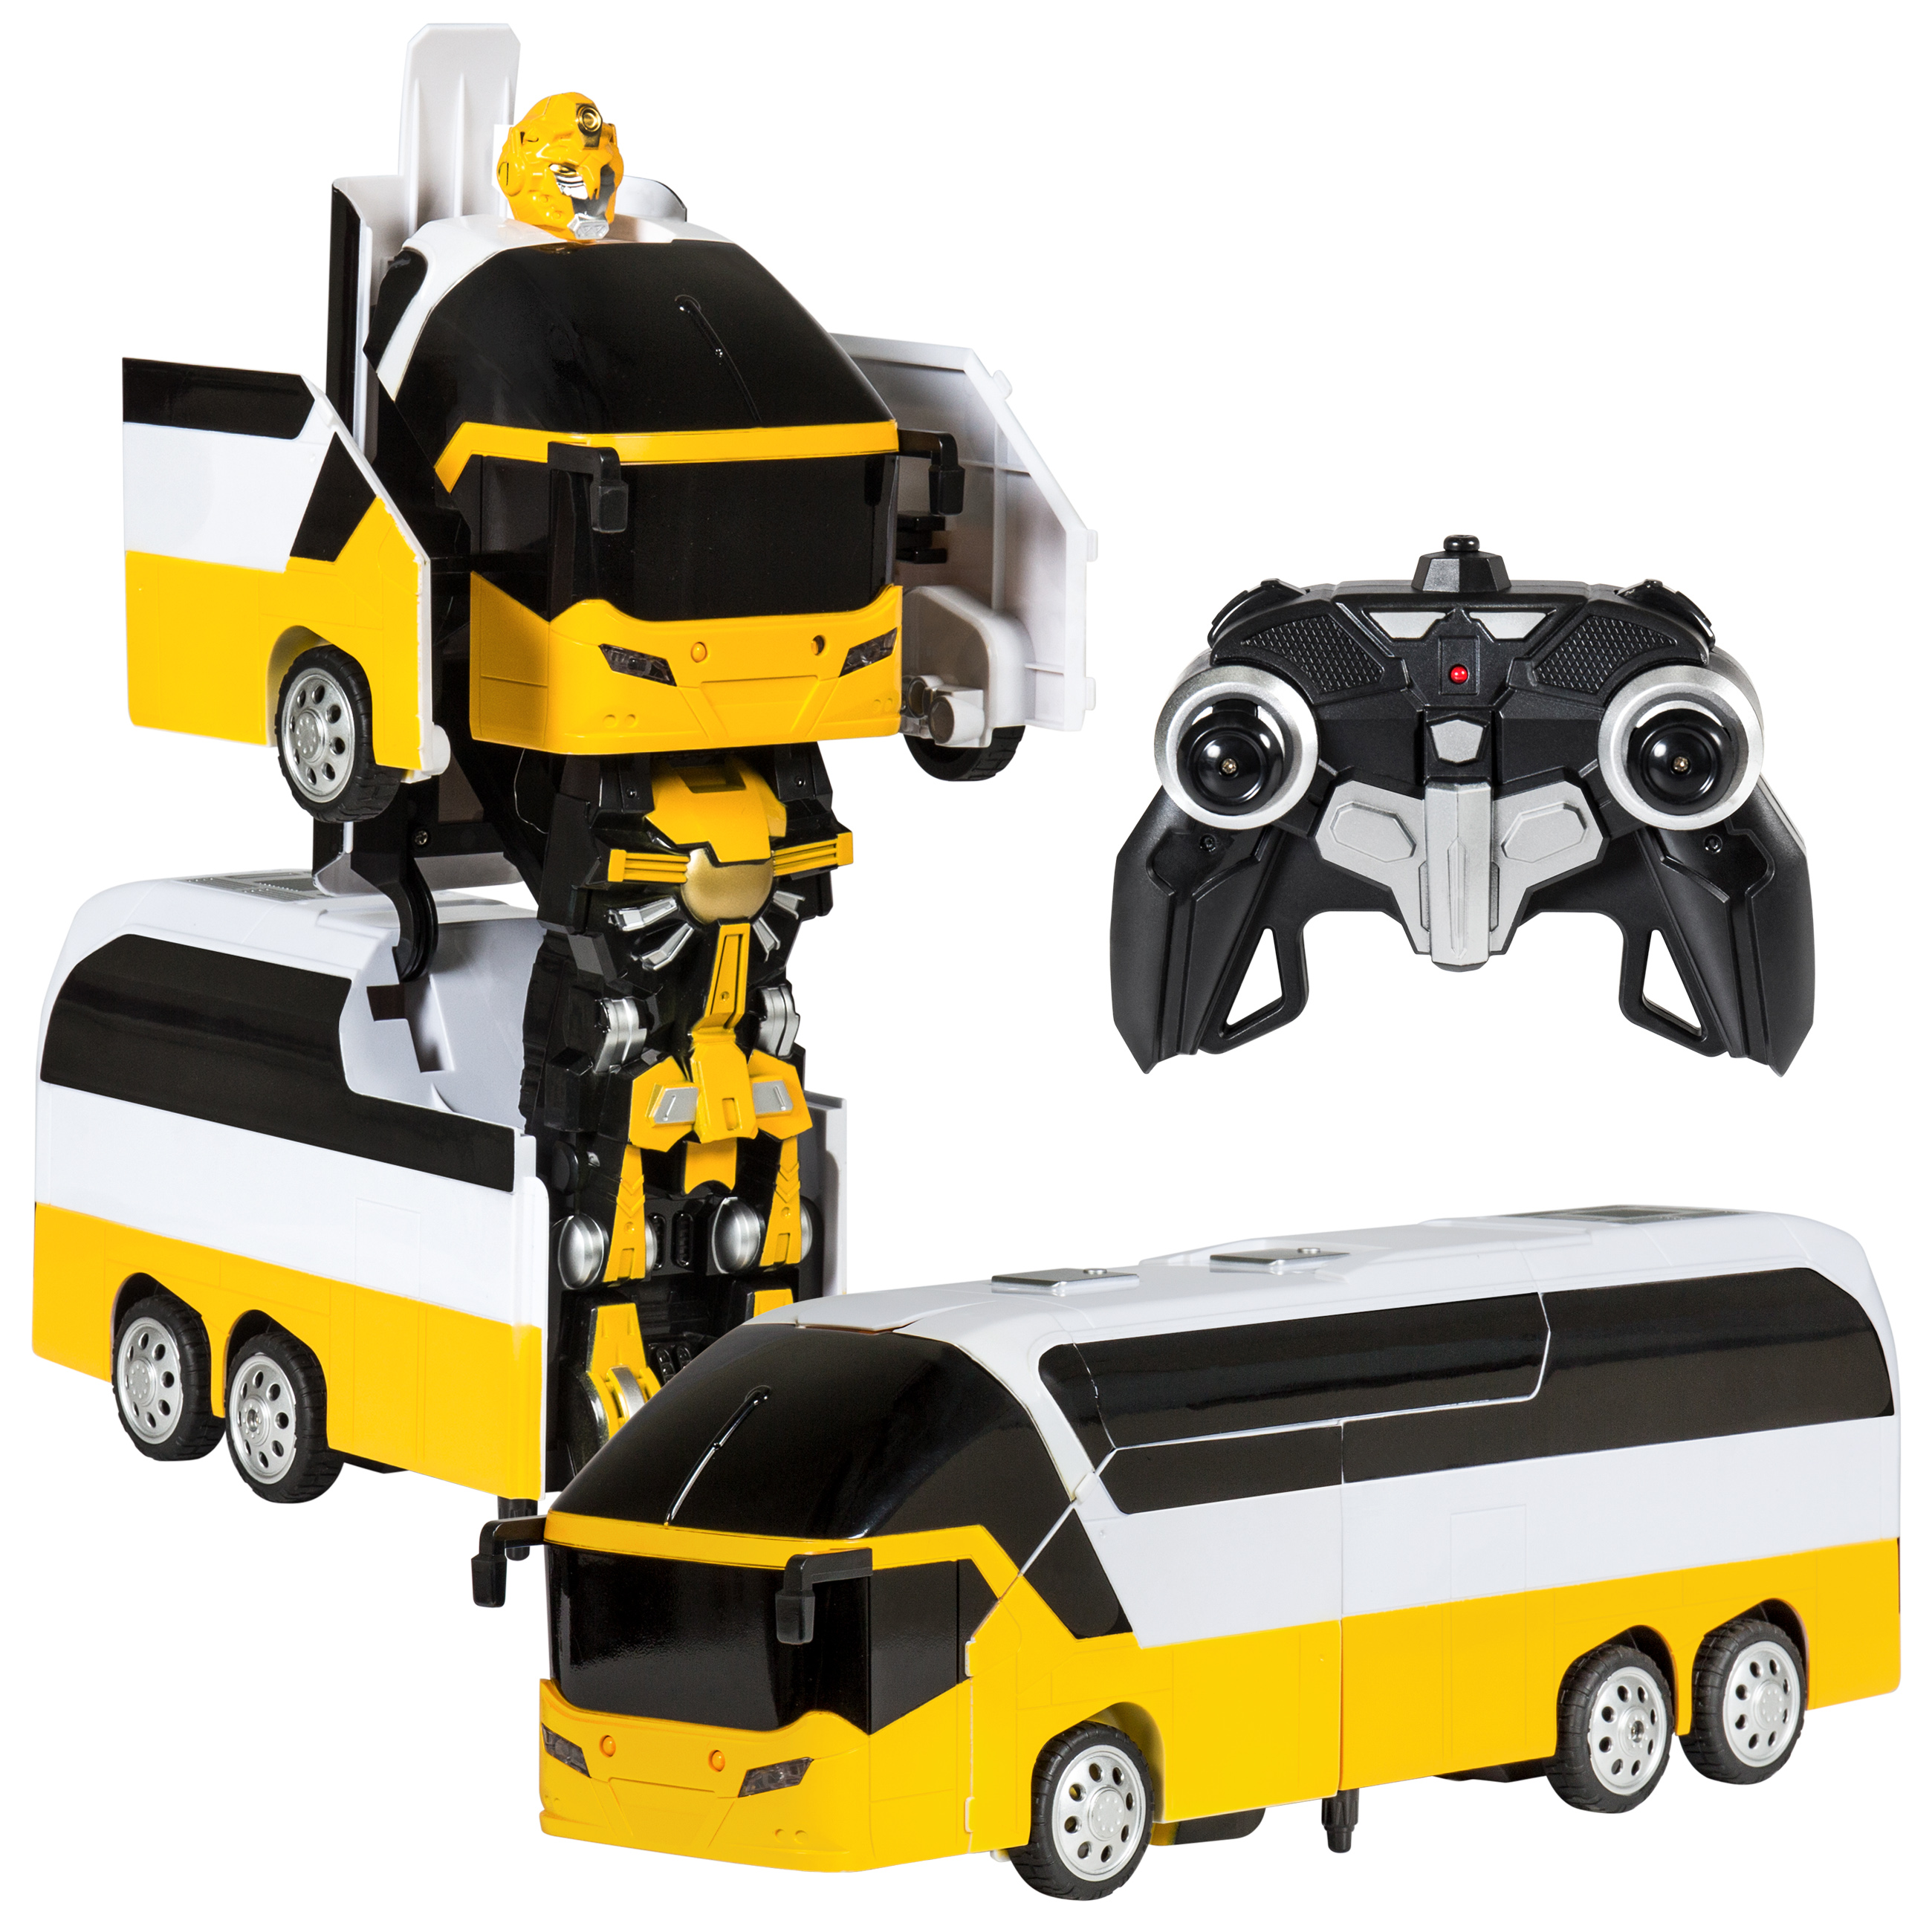 Best Choice Products Toy Remote Control Transformer Bus RC Robot w  USB Charger Yellow by Best Choice Products